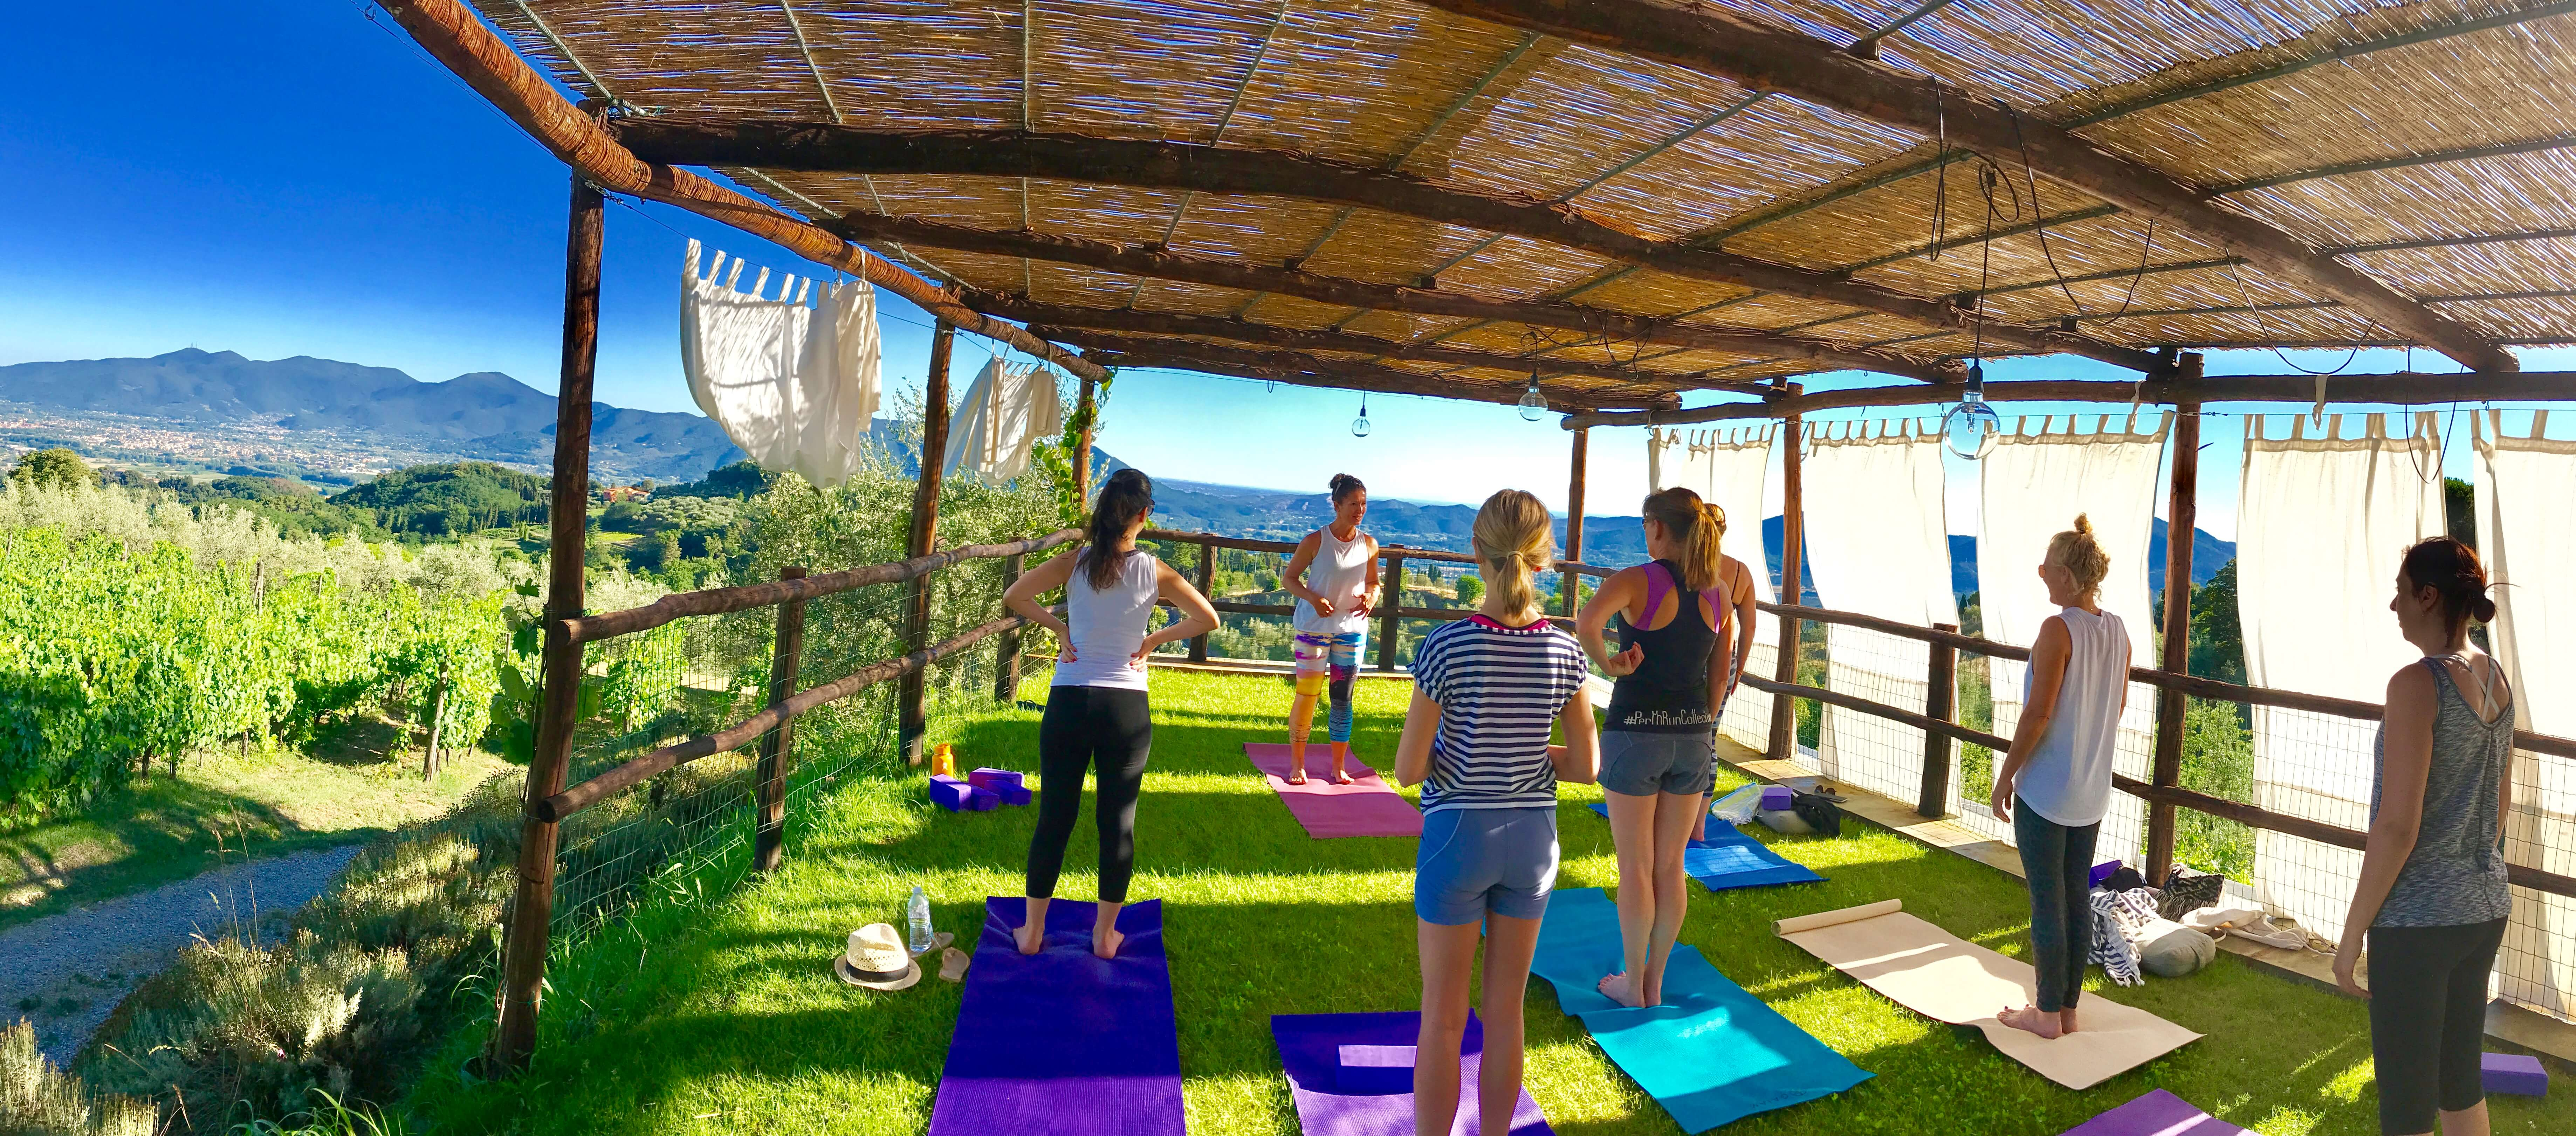 Yoga in Italy - practicing afternoon yoga up at outdoor yoga platform.